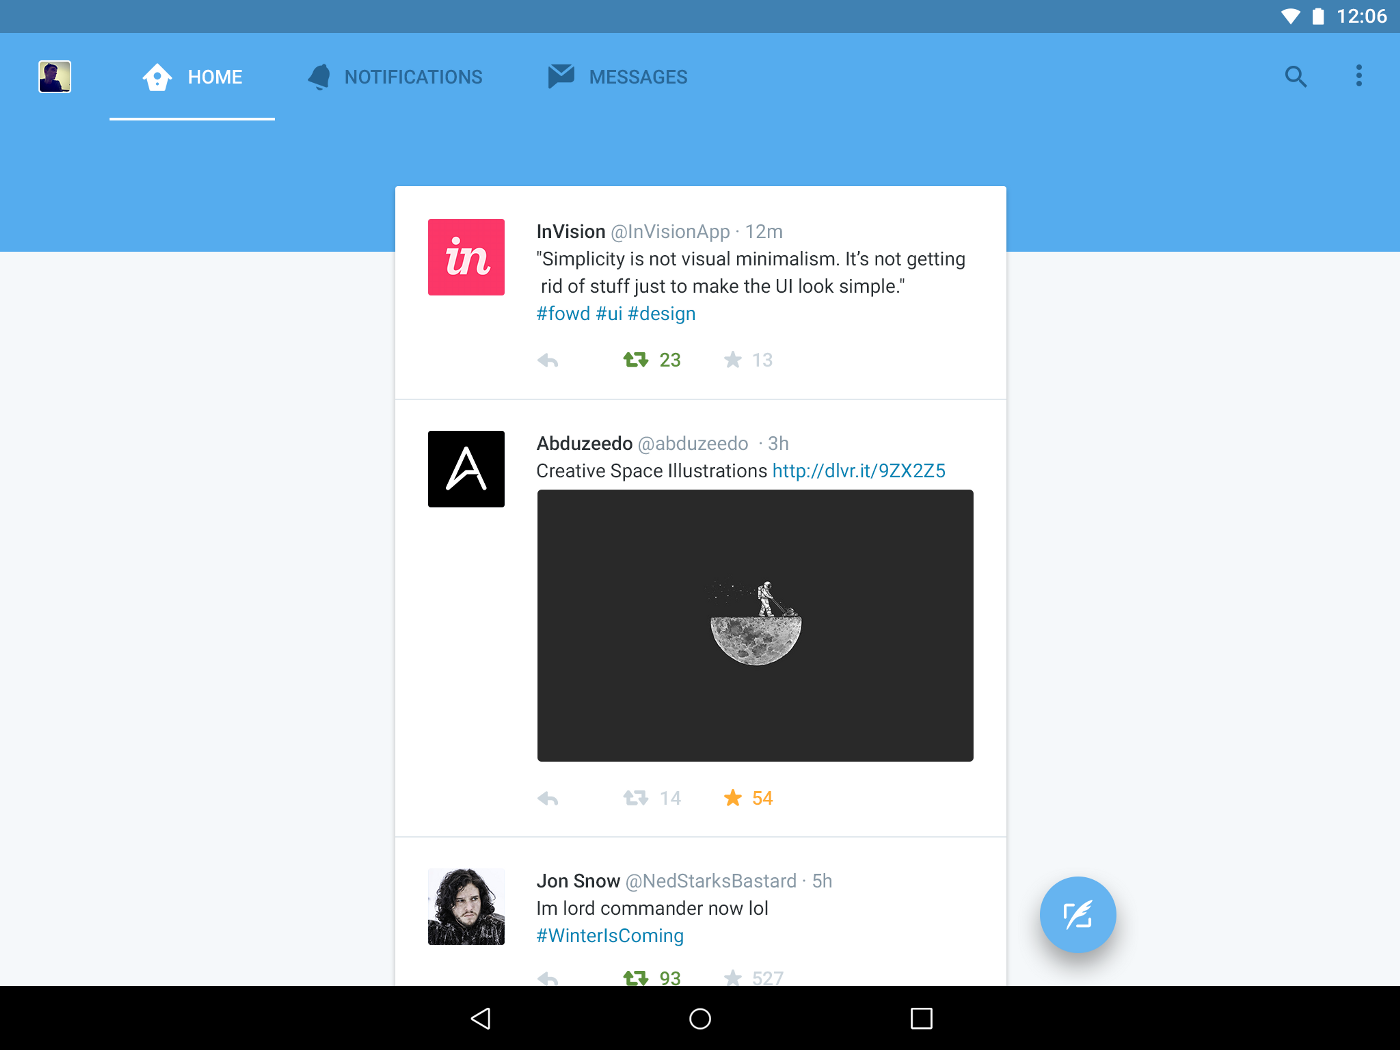 Overhauling the Twitter Experience on Android - Chris Basha